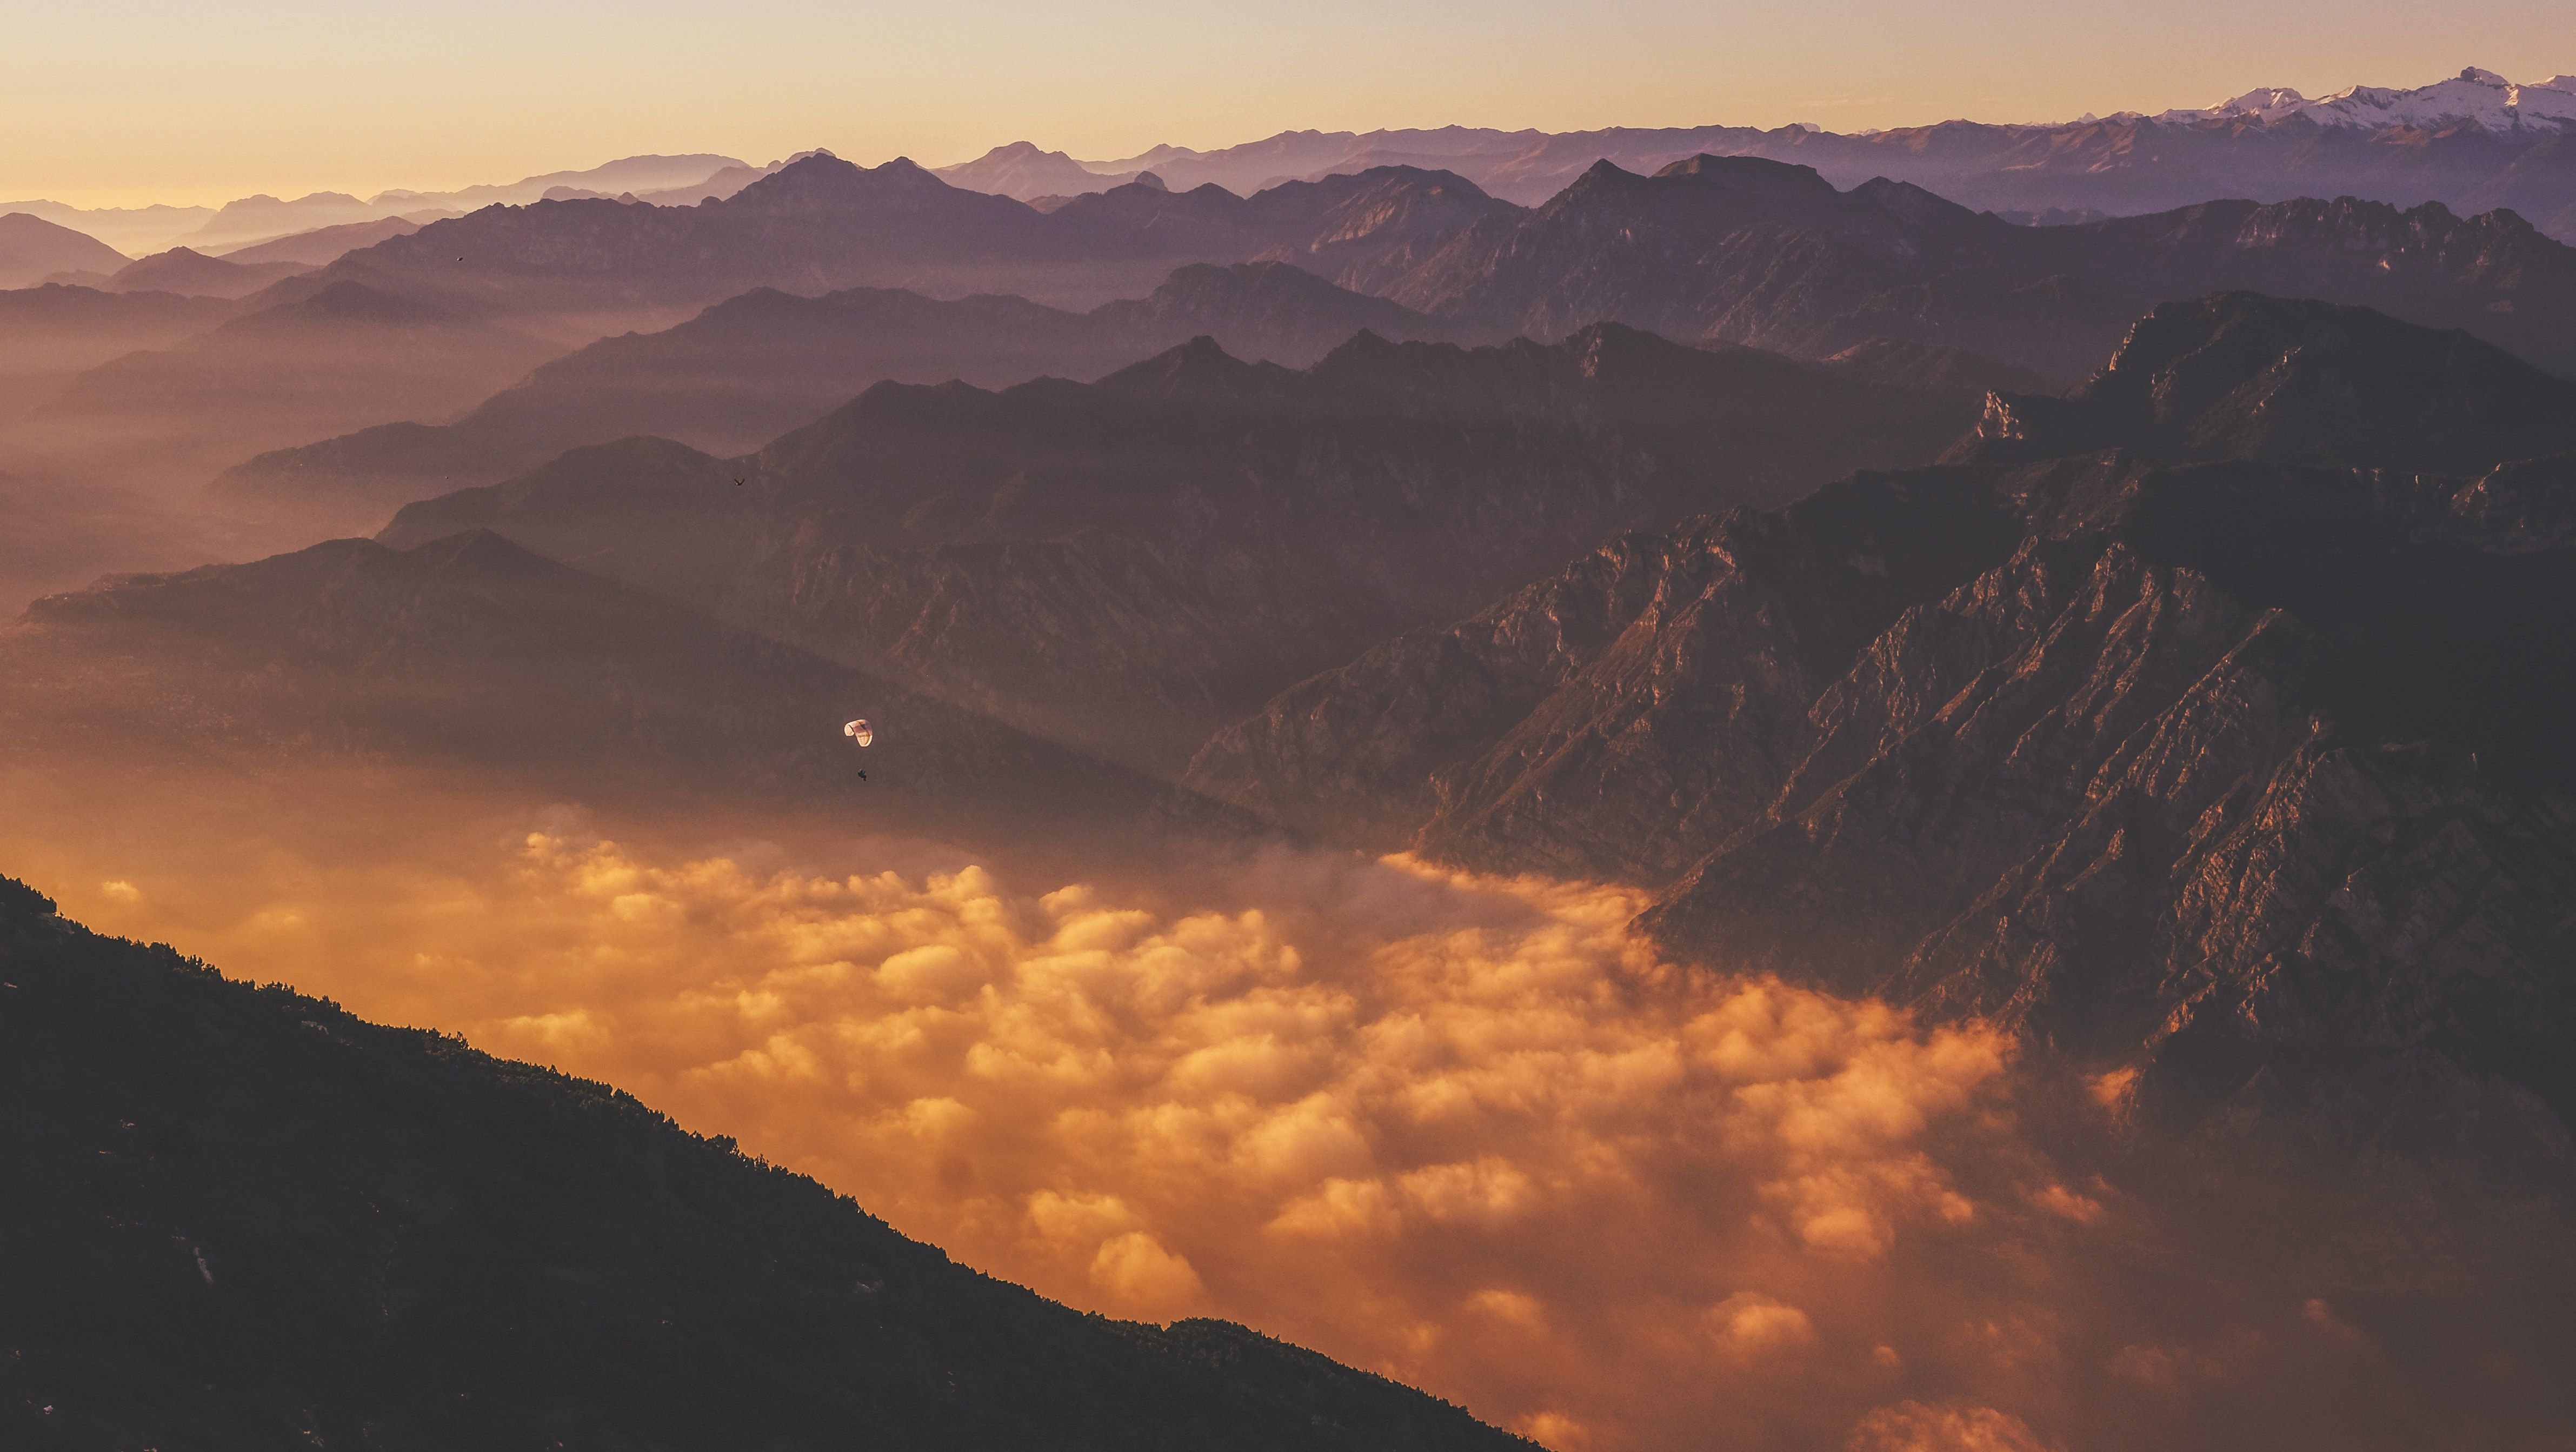 A paraglider over clouds obscuring the bottom of a mountain valley during sunset